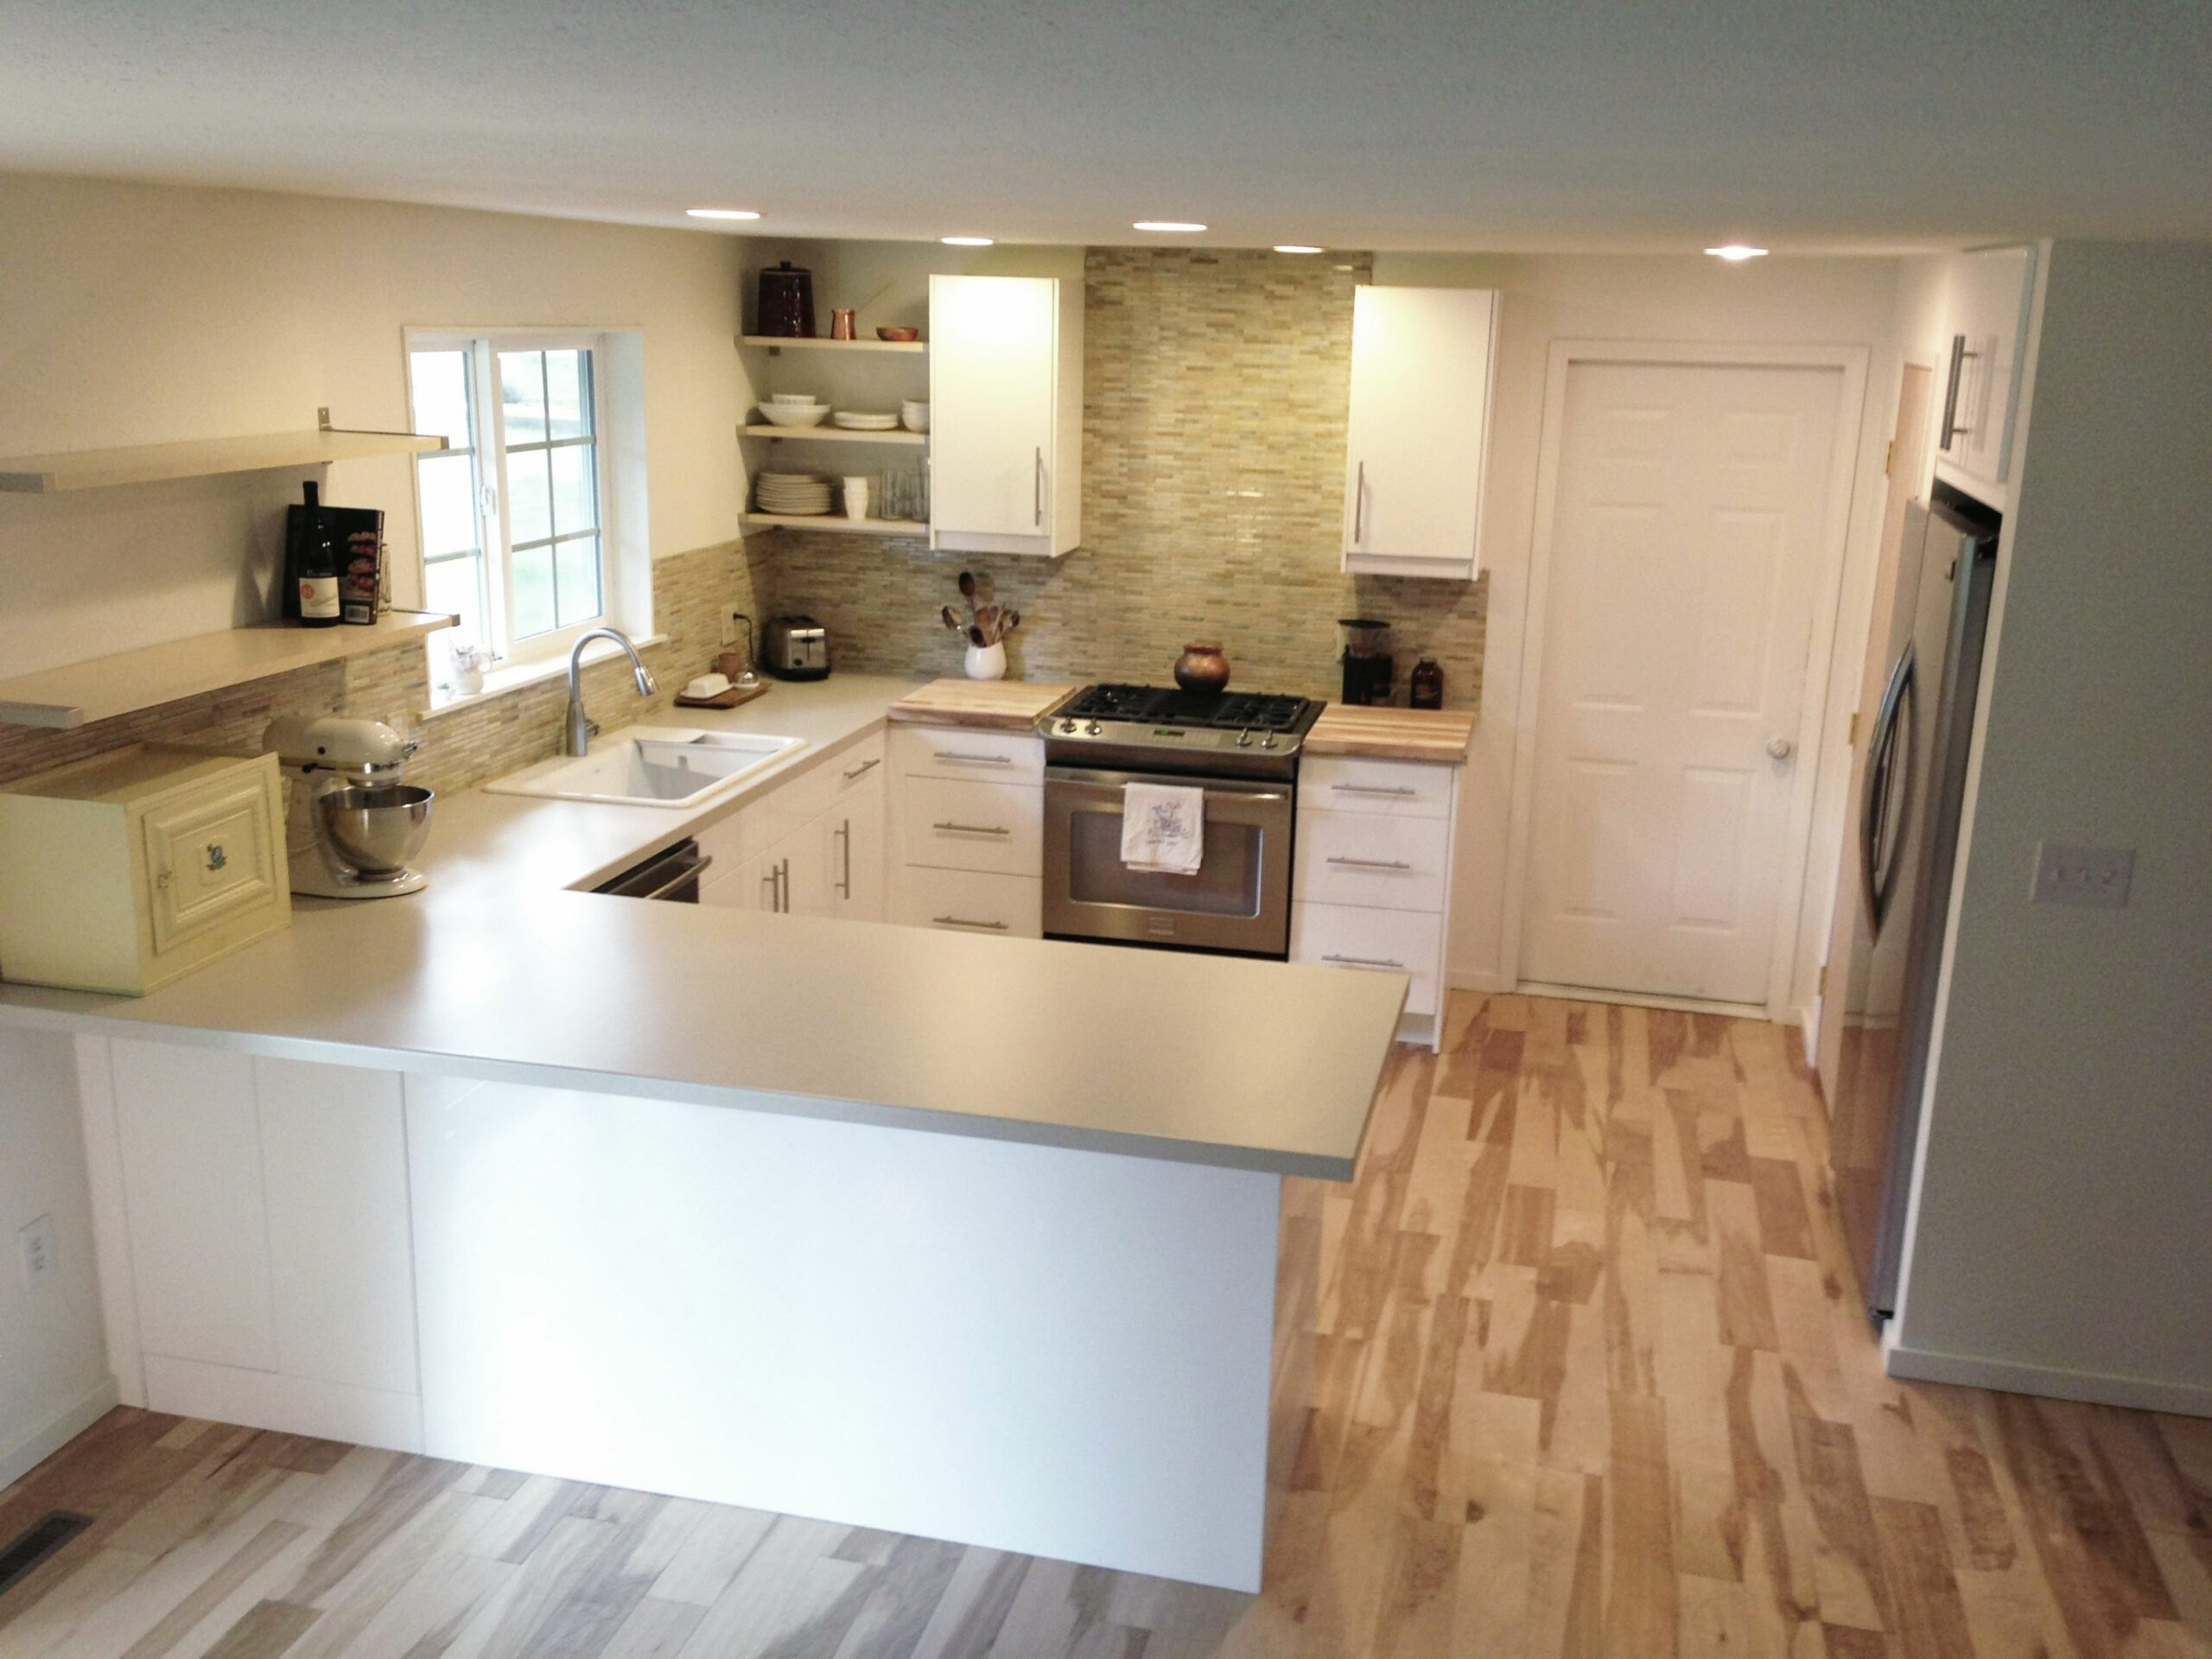 Kitchen Remodel Ideas Ranch House Beautiful Home Remodeling Style ..